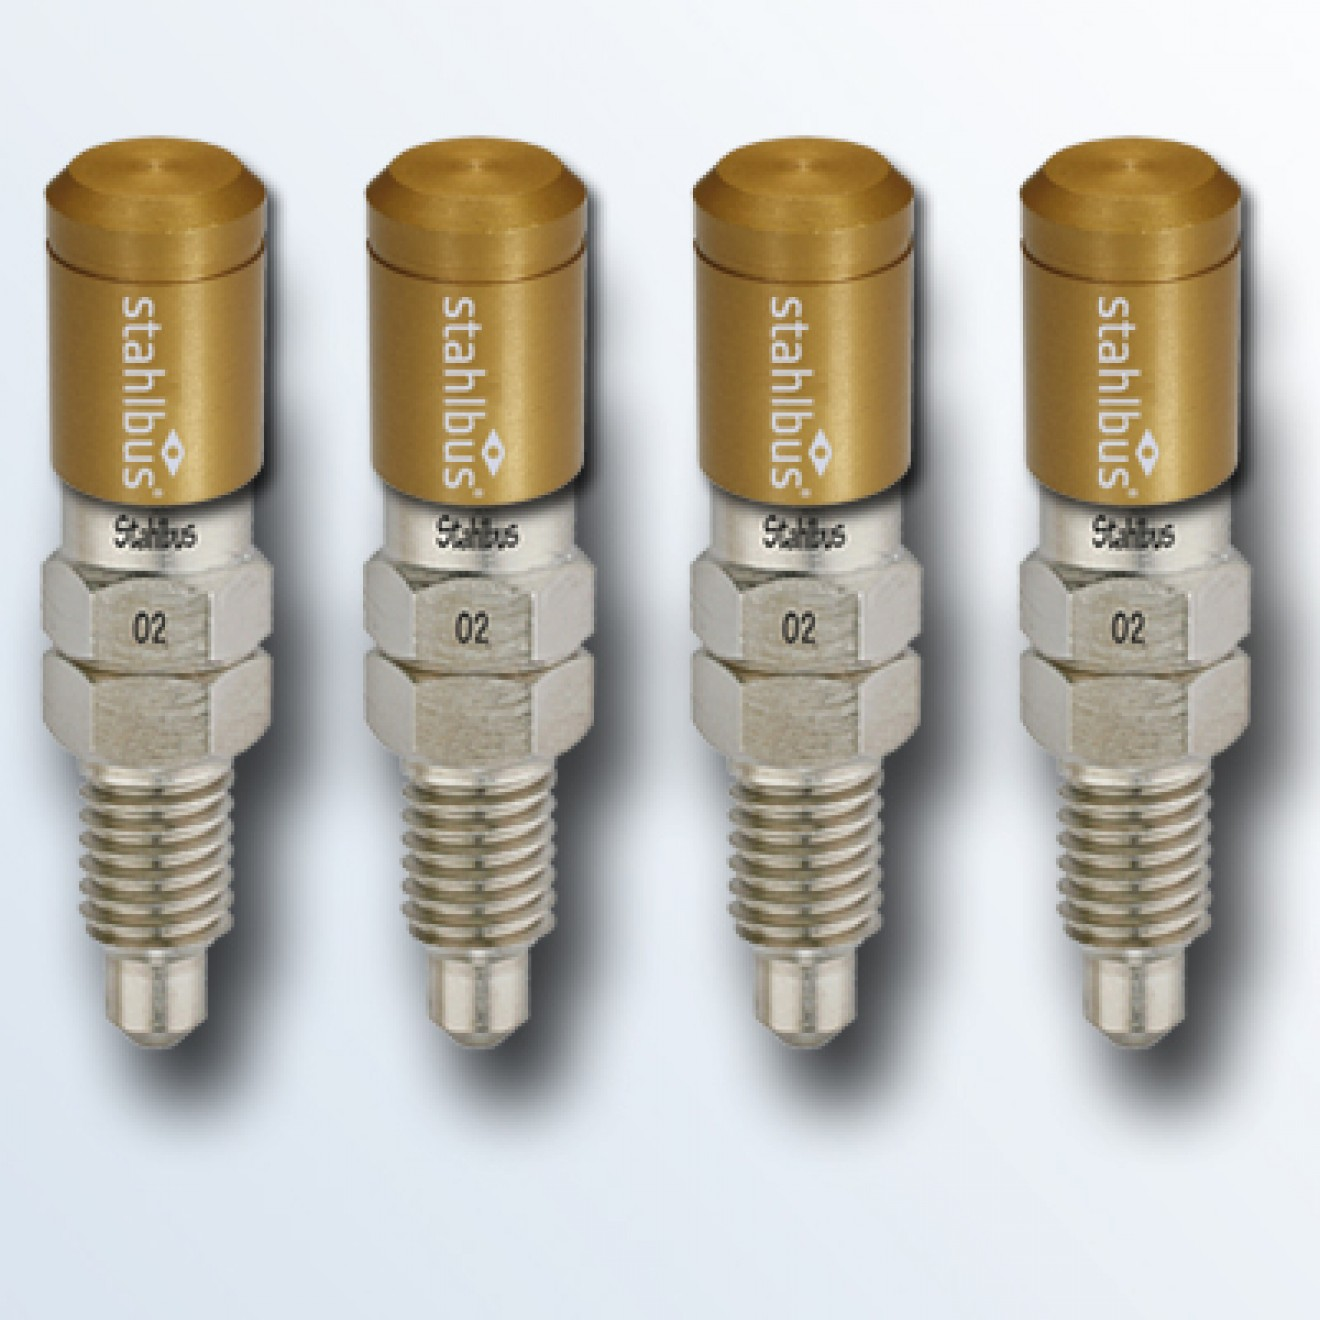 4-piece set stahlbus Bleeder valve M8x1.25x16mm (M), steel with golden dust cap